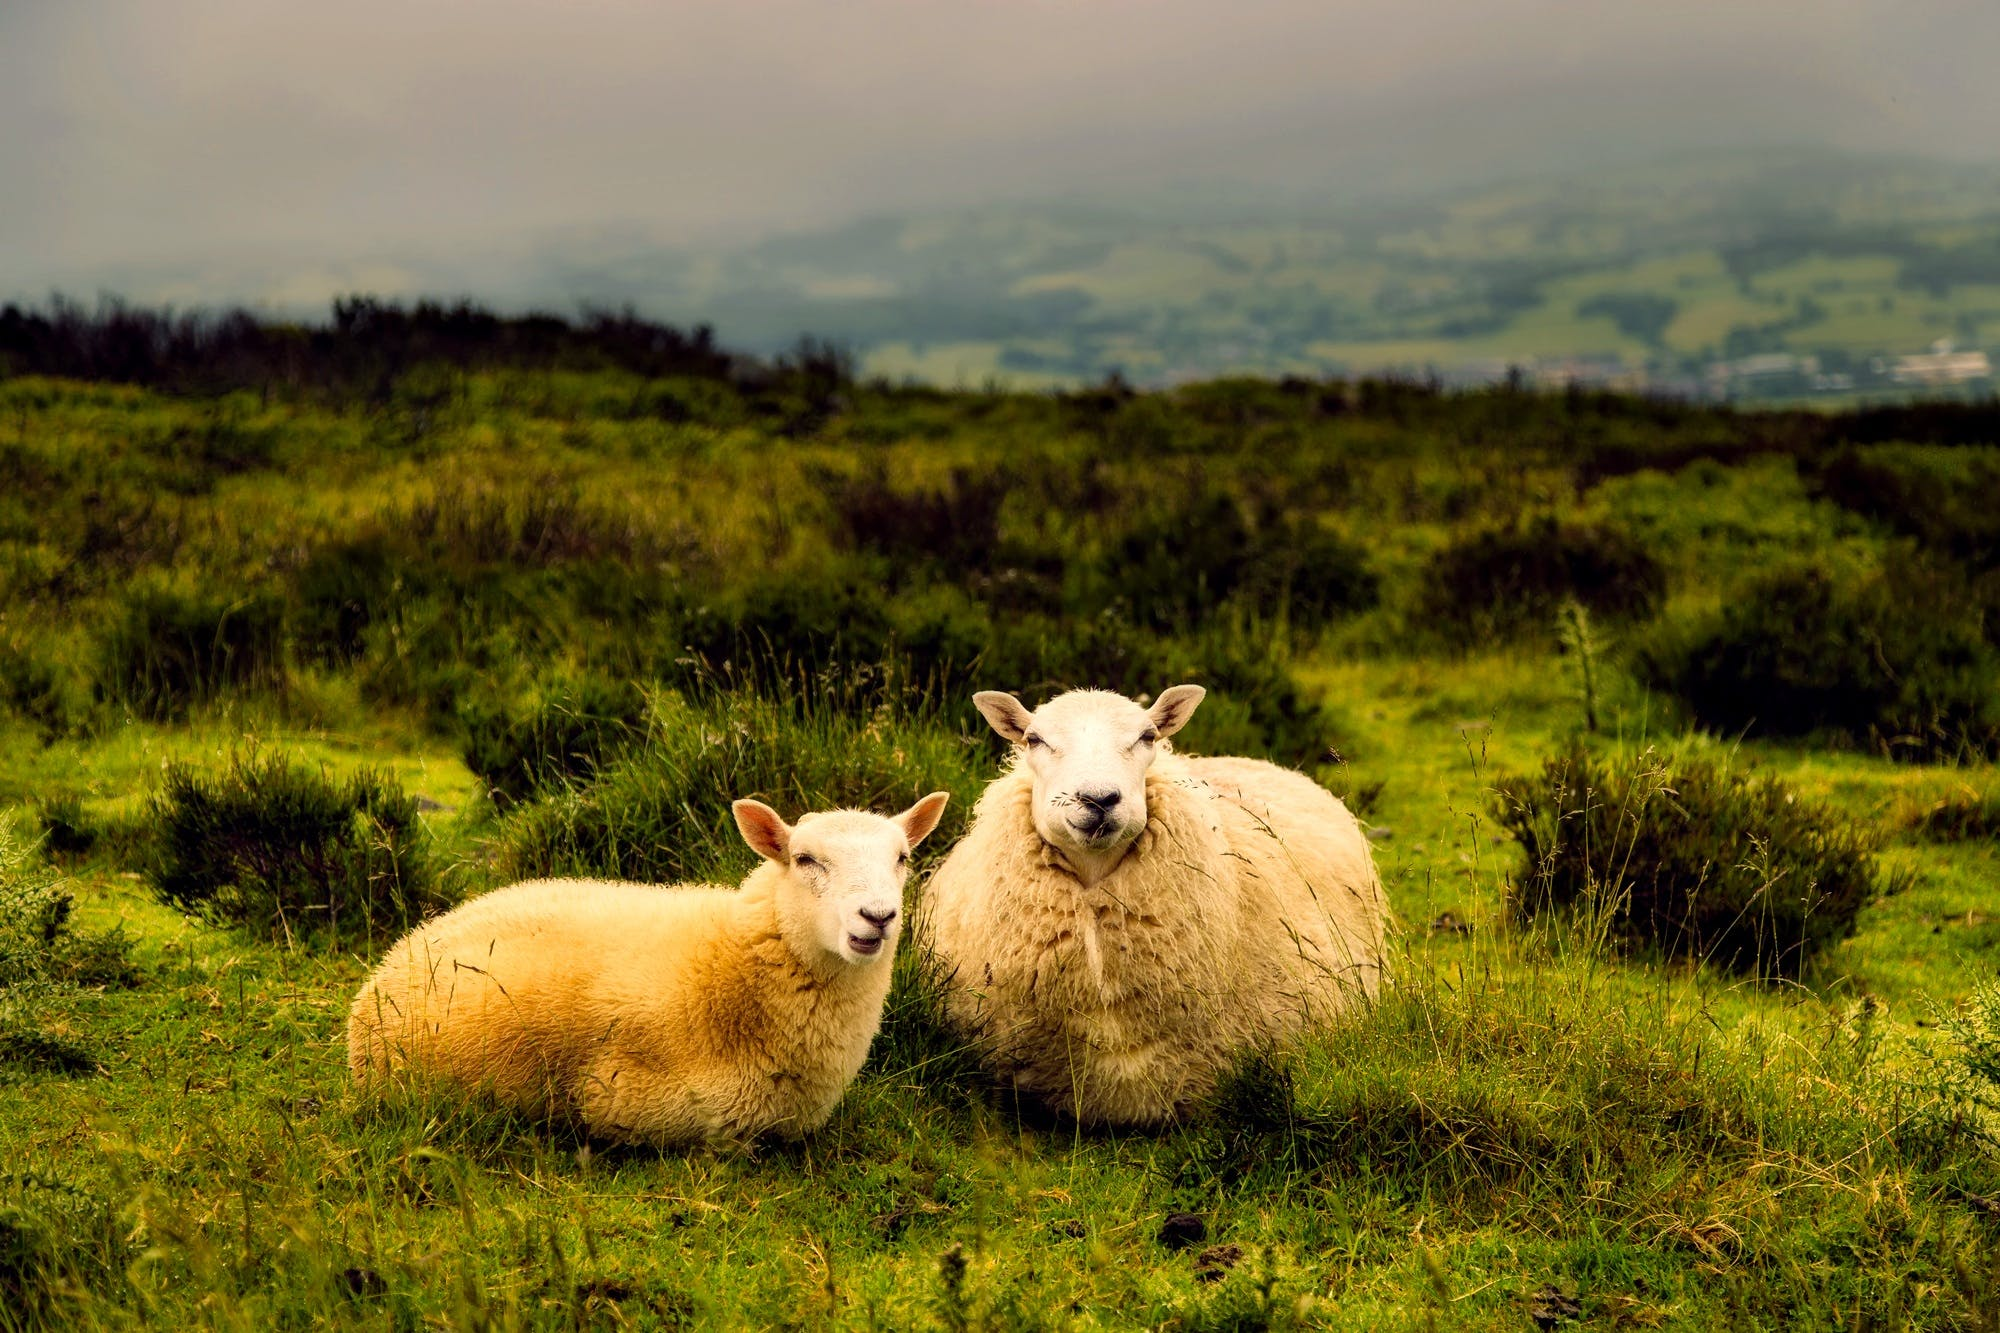 Two White Sheeps